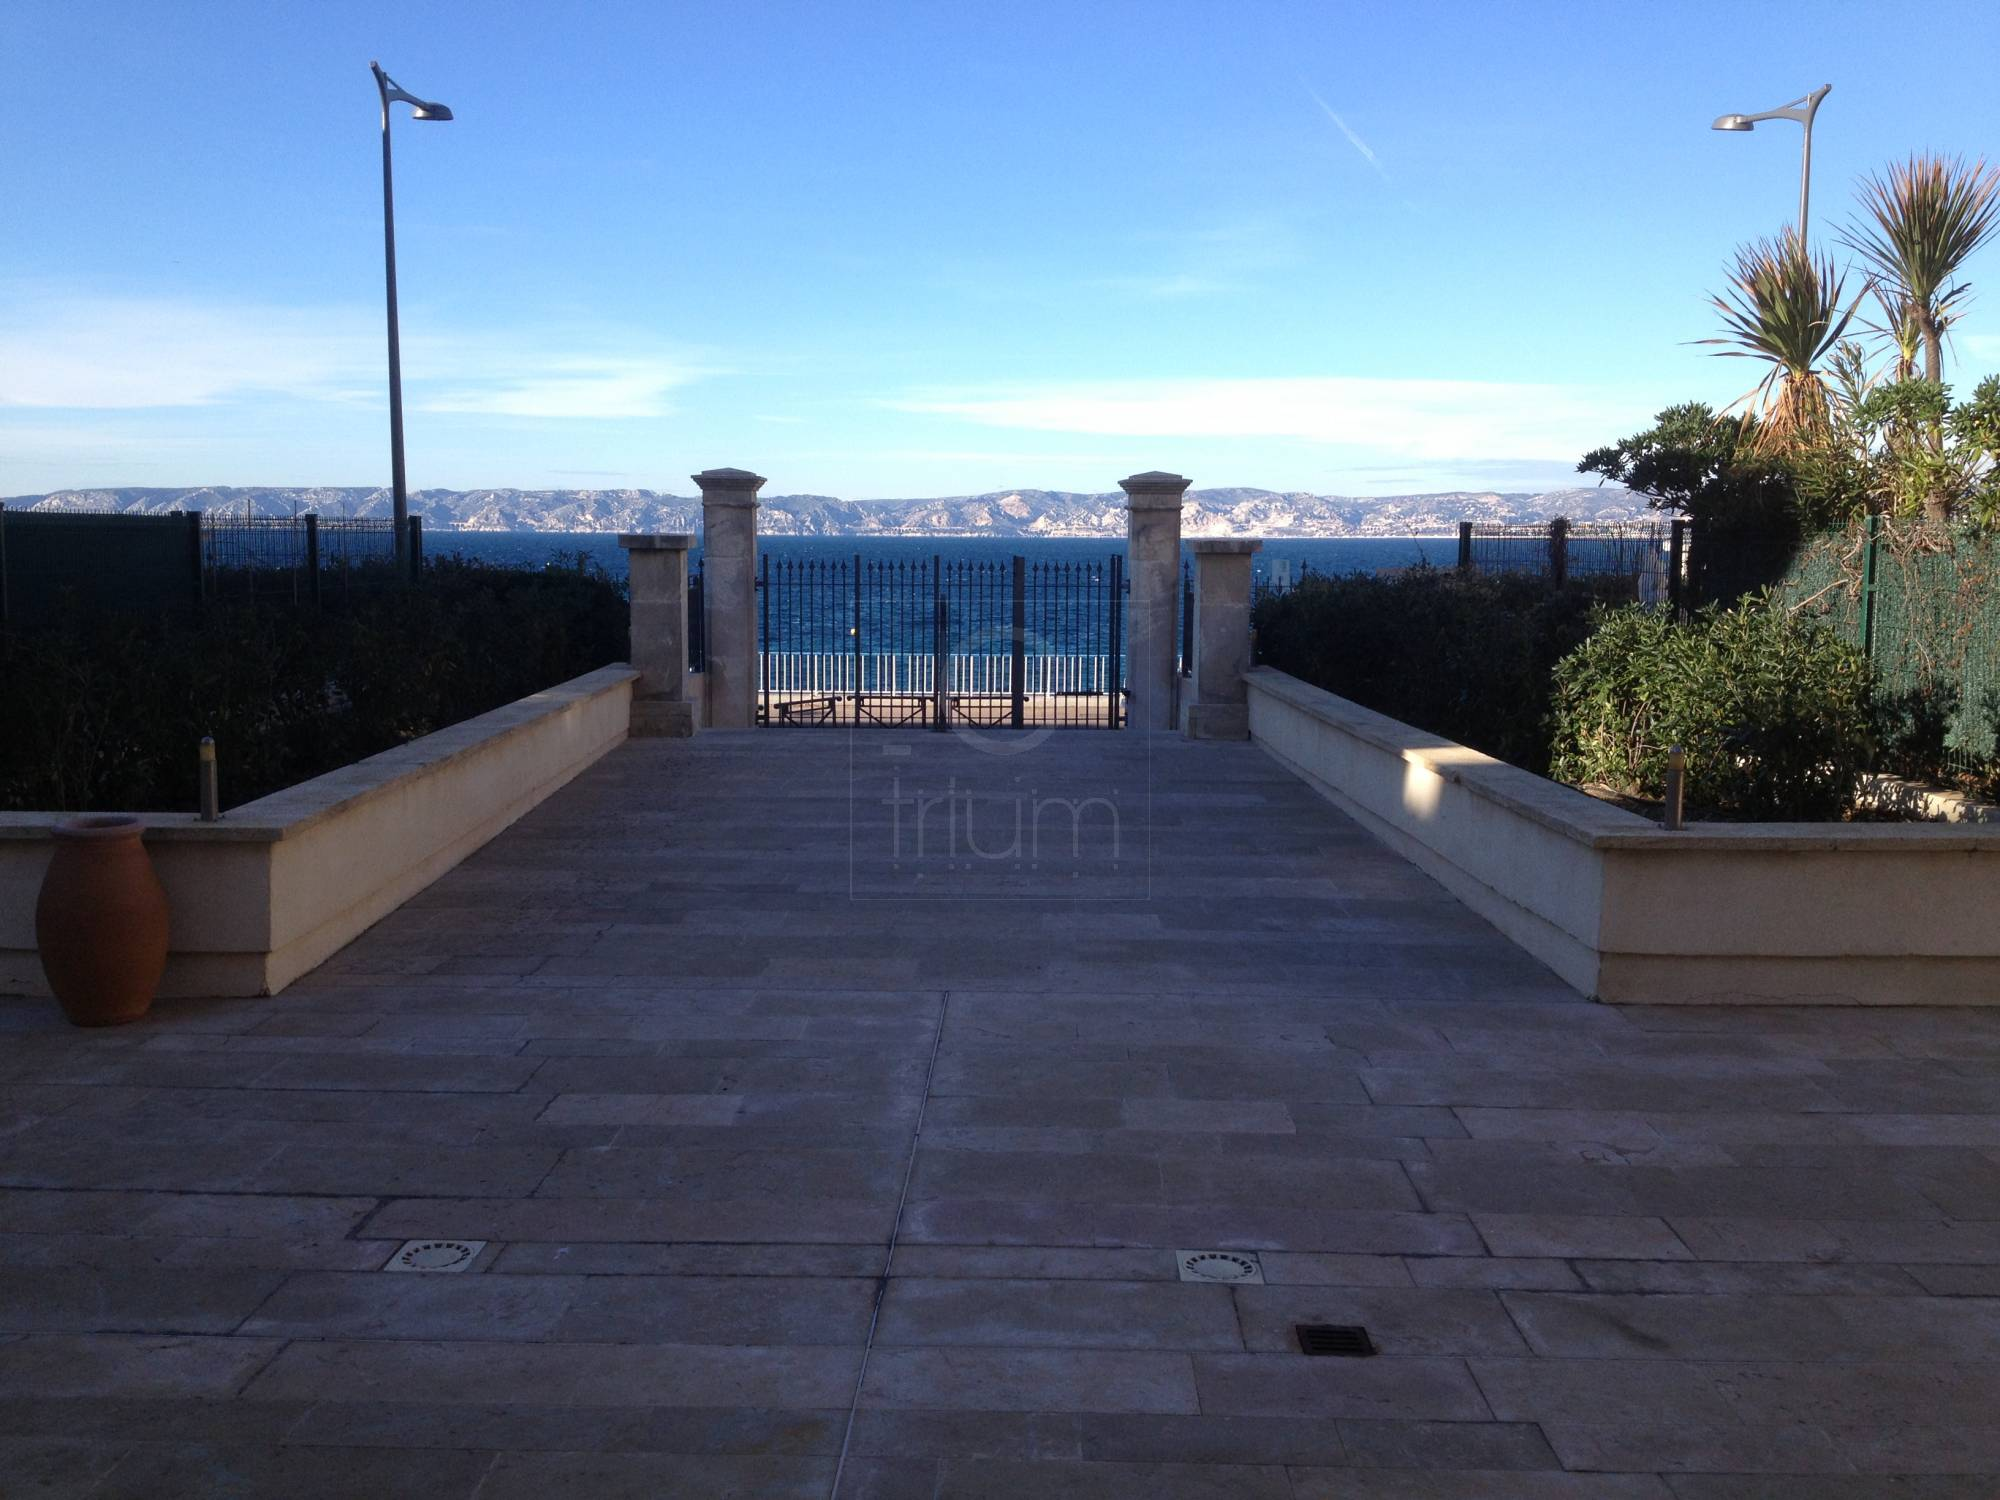 Vente appartement t3 f3 marseille 7eme corniche kennedy for T3 marseille vente